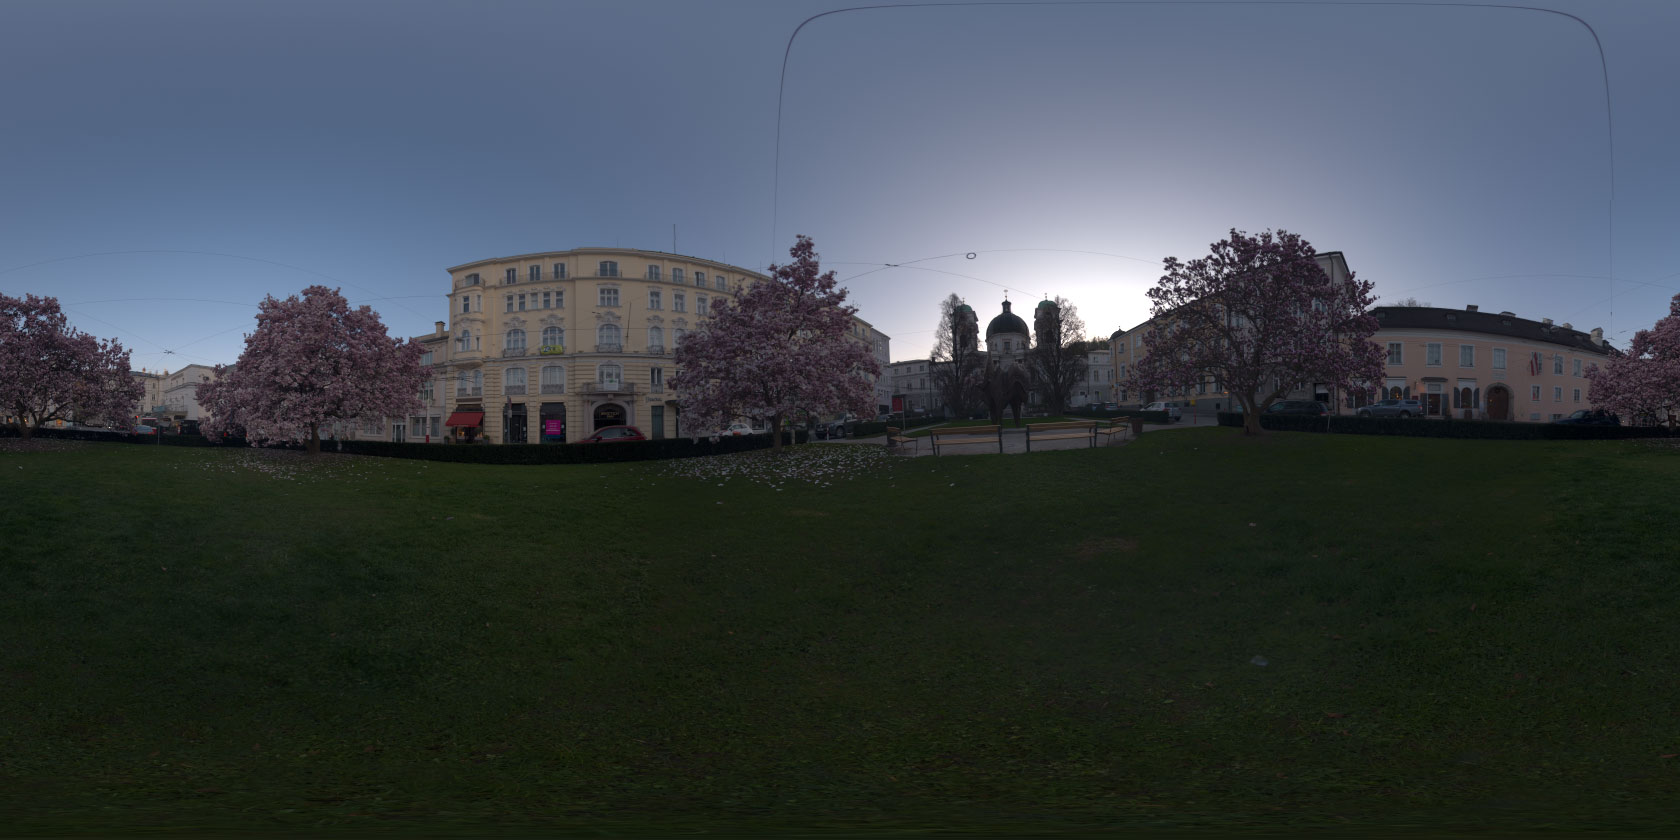 hdri 360176 magnolia trees blooming in the city openfootage